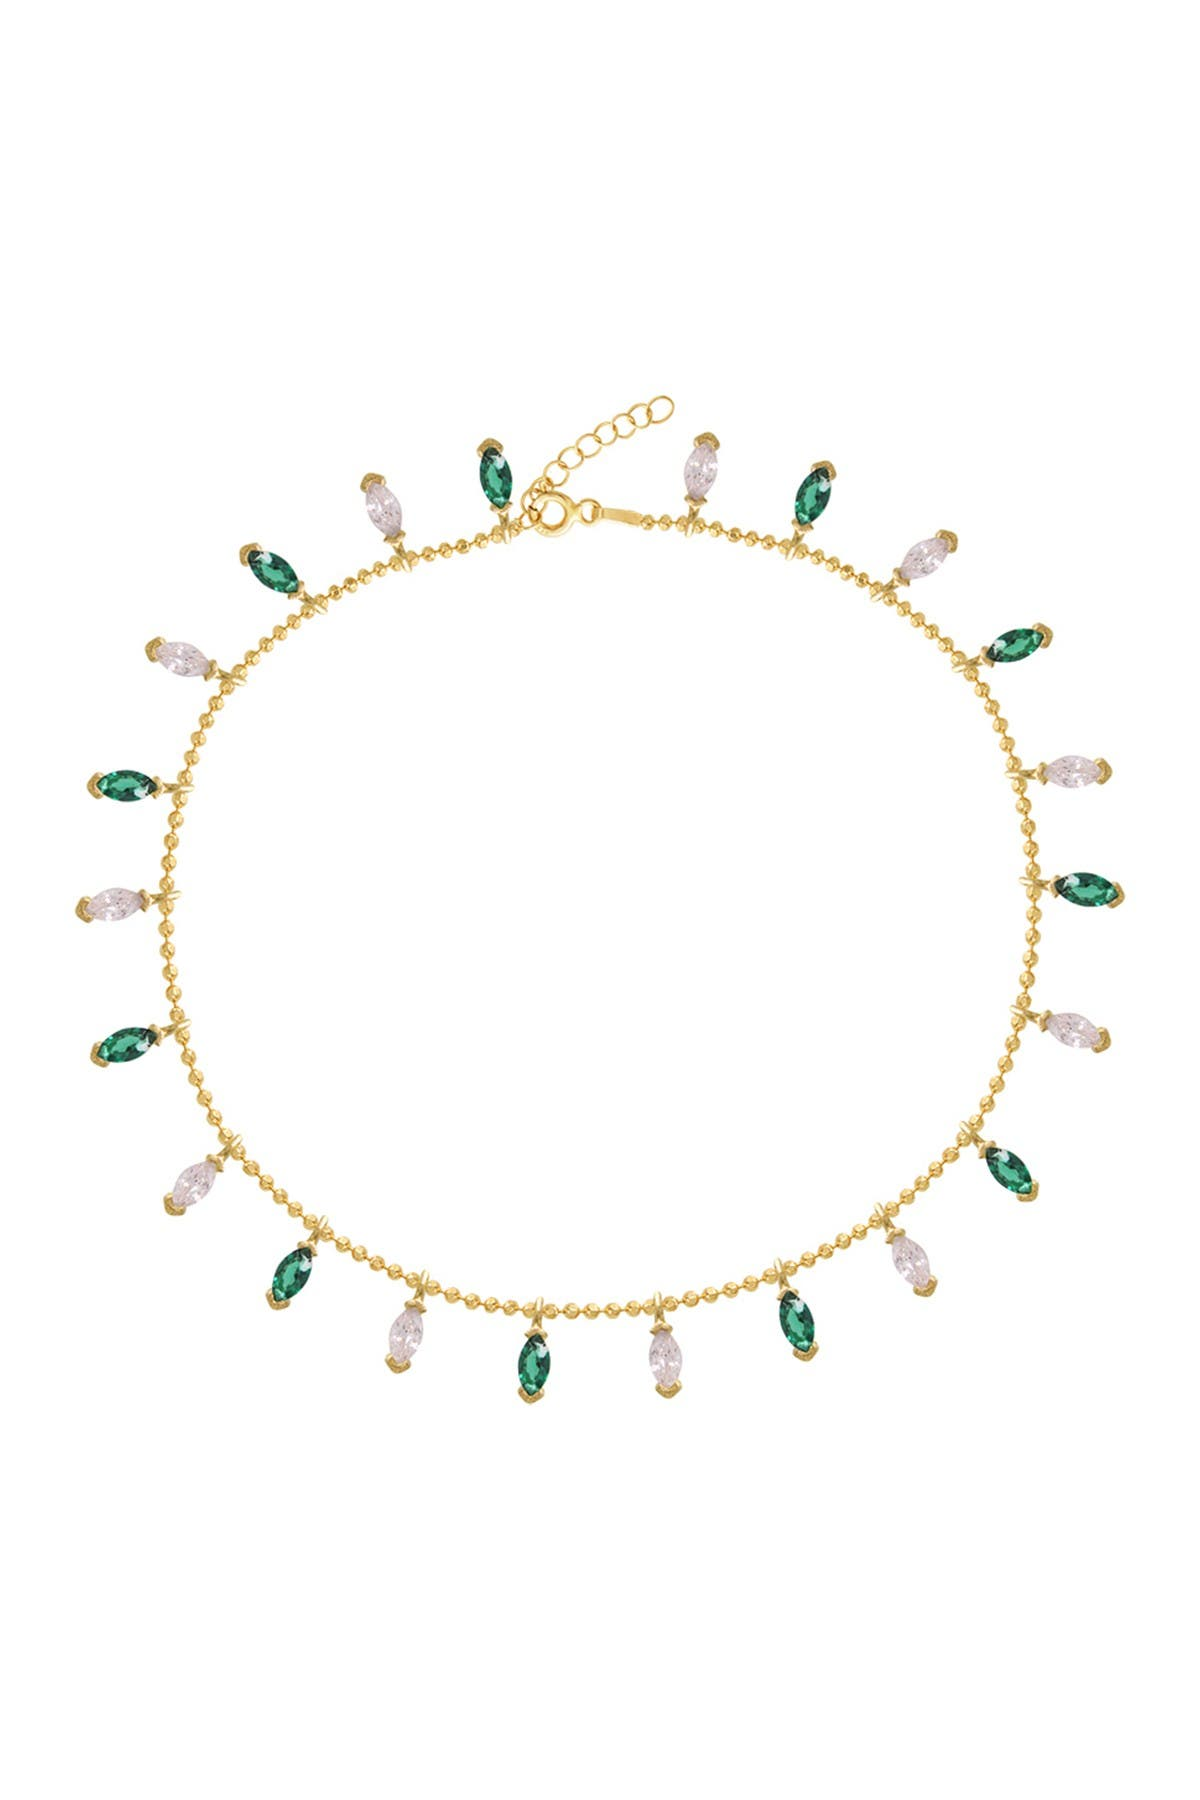 Image of Gabi Rielle 14K Gold Plated Emerald and Diamondette Marquis Anklet